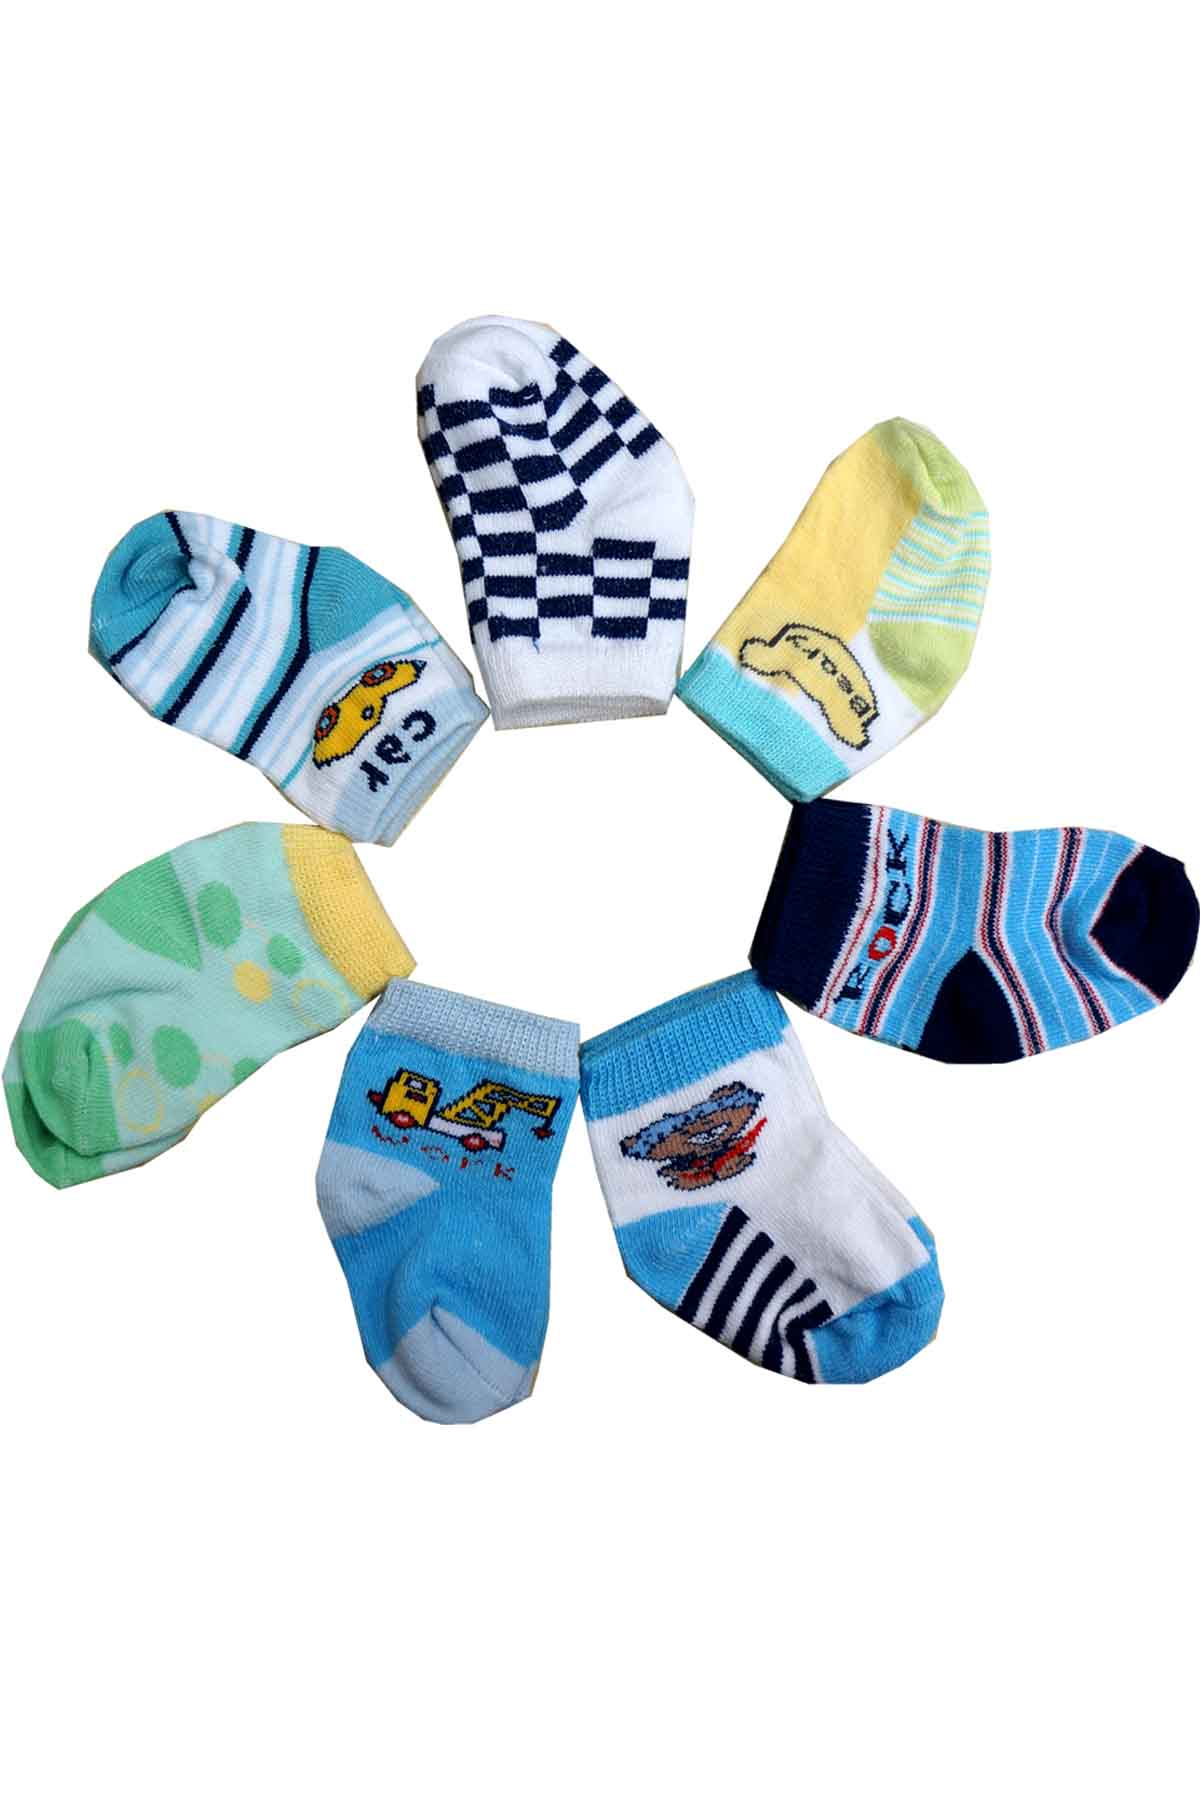 Seven Days Baby Boy Socks Assorted end 10 24 2019 11 34 PM